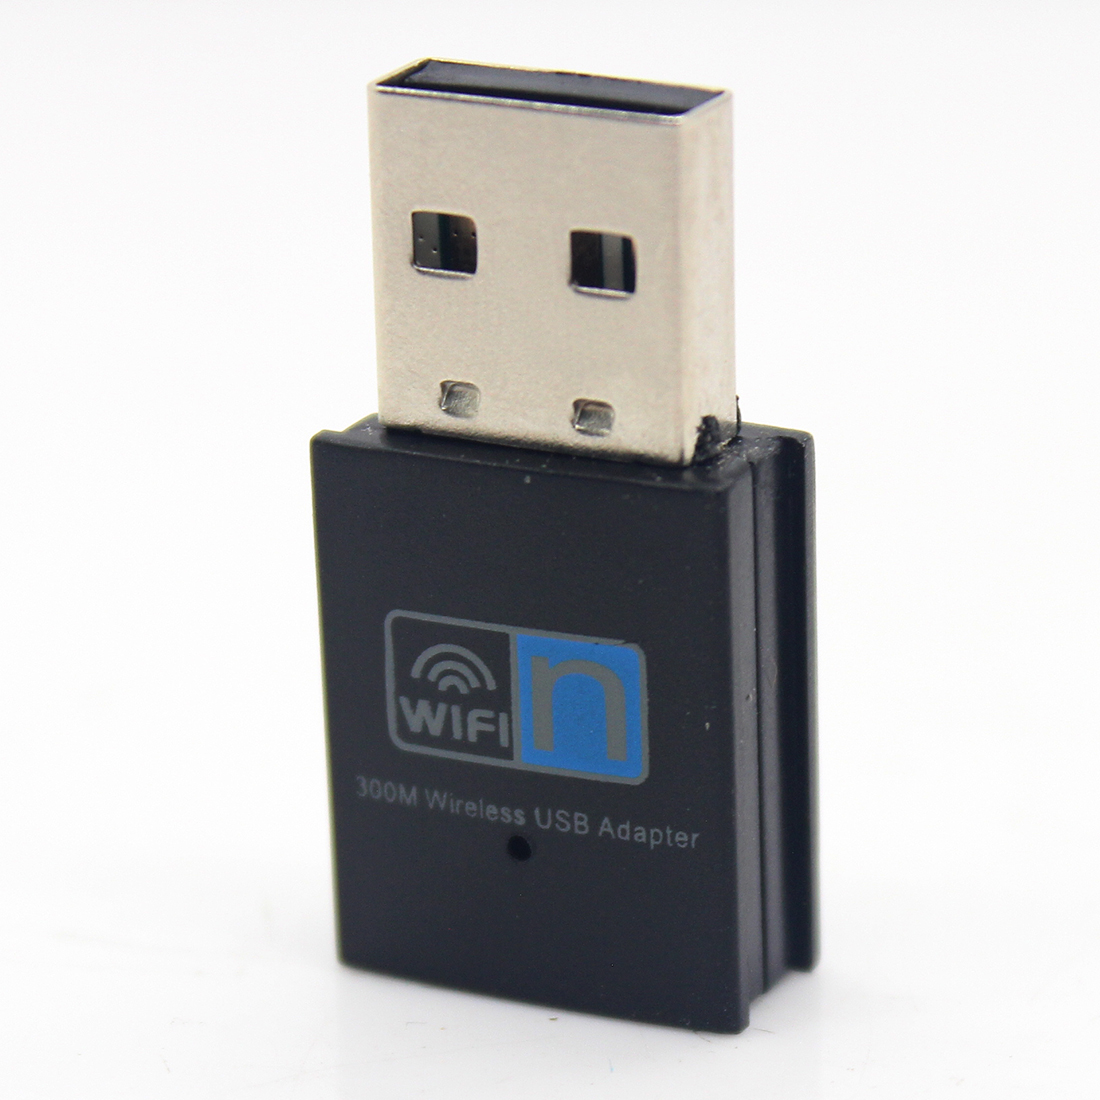 NOYOKERE Mini 300M USB2.0 RTL8192 Wifi dongle WiFi adapter Wireless wifi dongle Network Card 802.11 n/g/b wi fi LAN Adapter for ar9160 mini pci 300mbps 802 11a b g n wireless wlan wifi card network card wi fi adapter